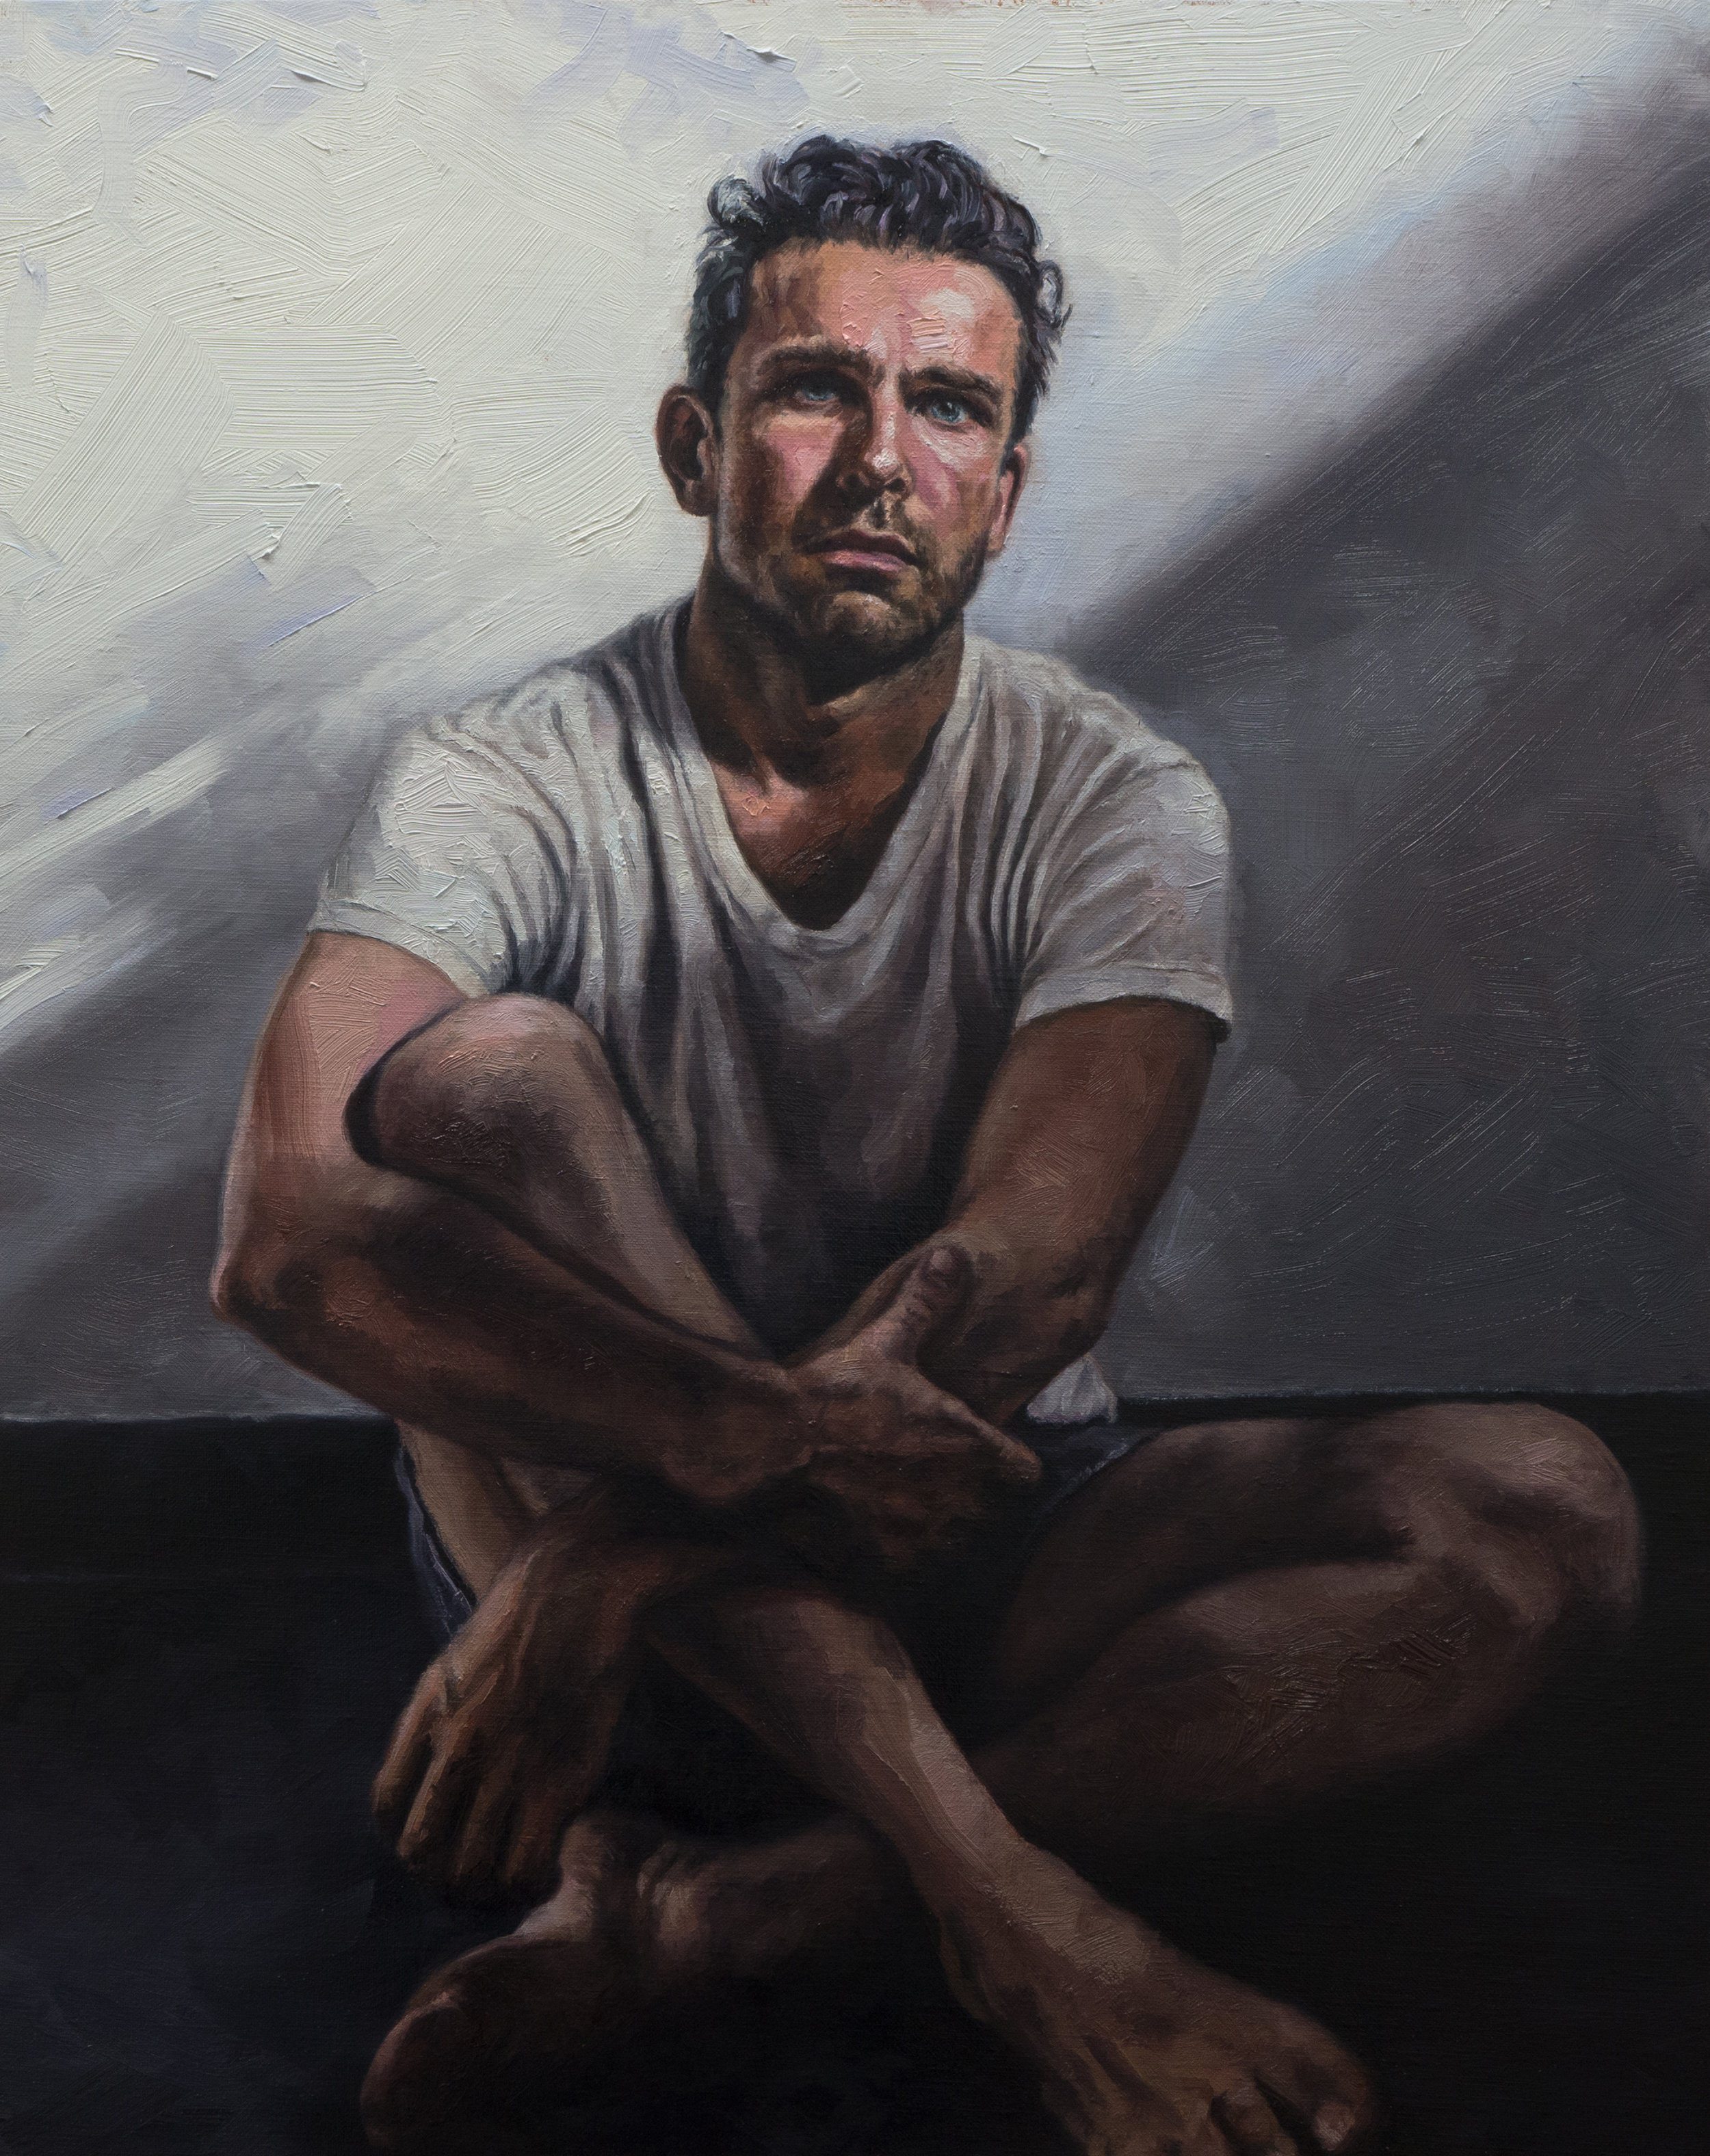 Joe / Oil on Stretched Linen / 24 x 30 in